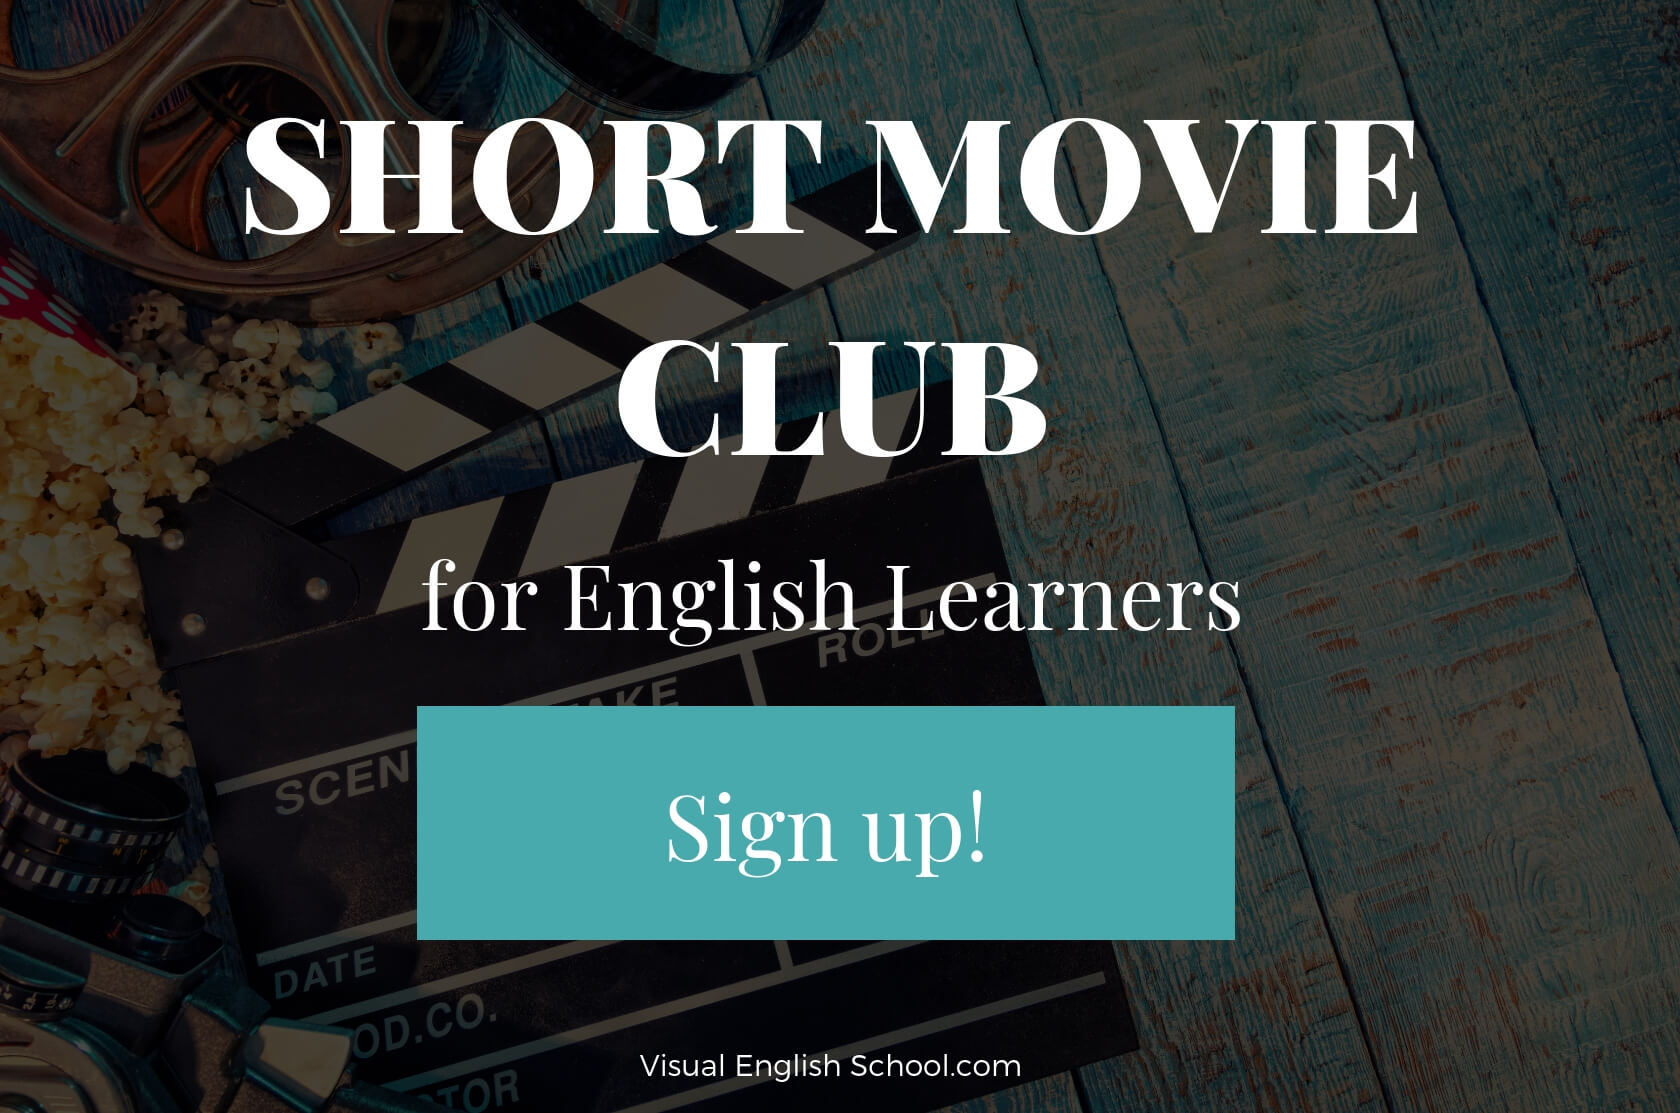 Sign up for the short movie club.